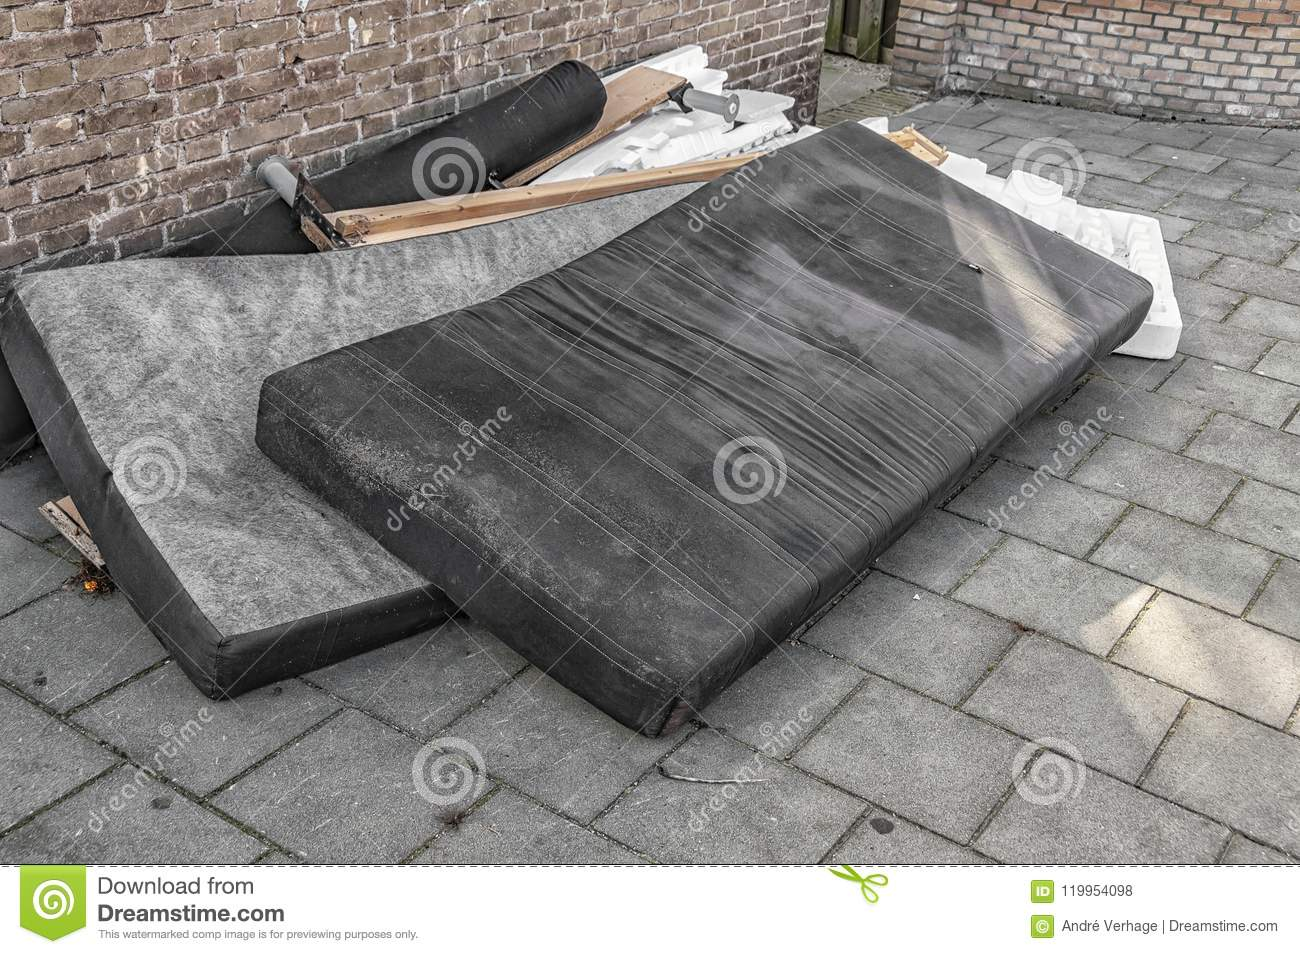 Used Mattresses Dumped On The Street Stock Photo - Image of ...